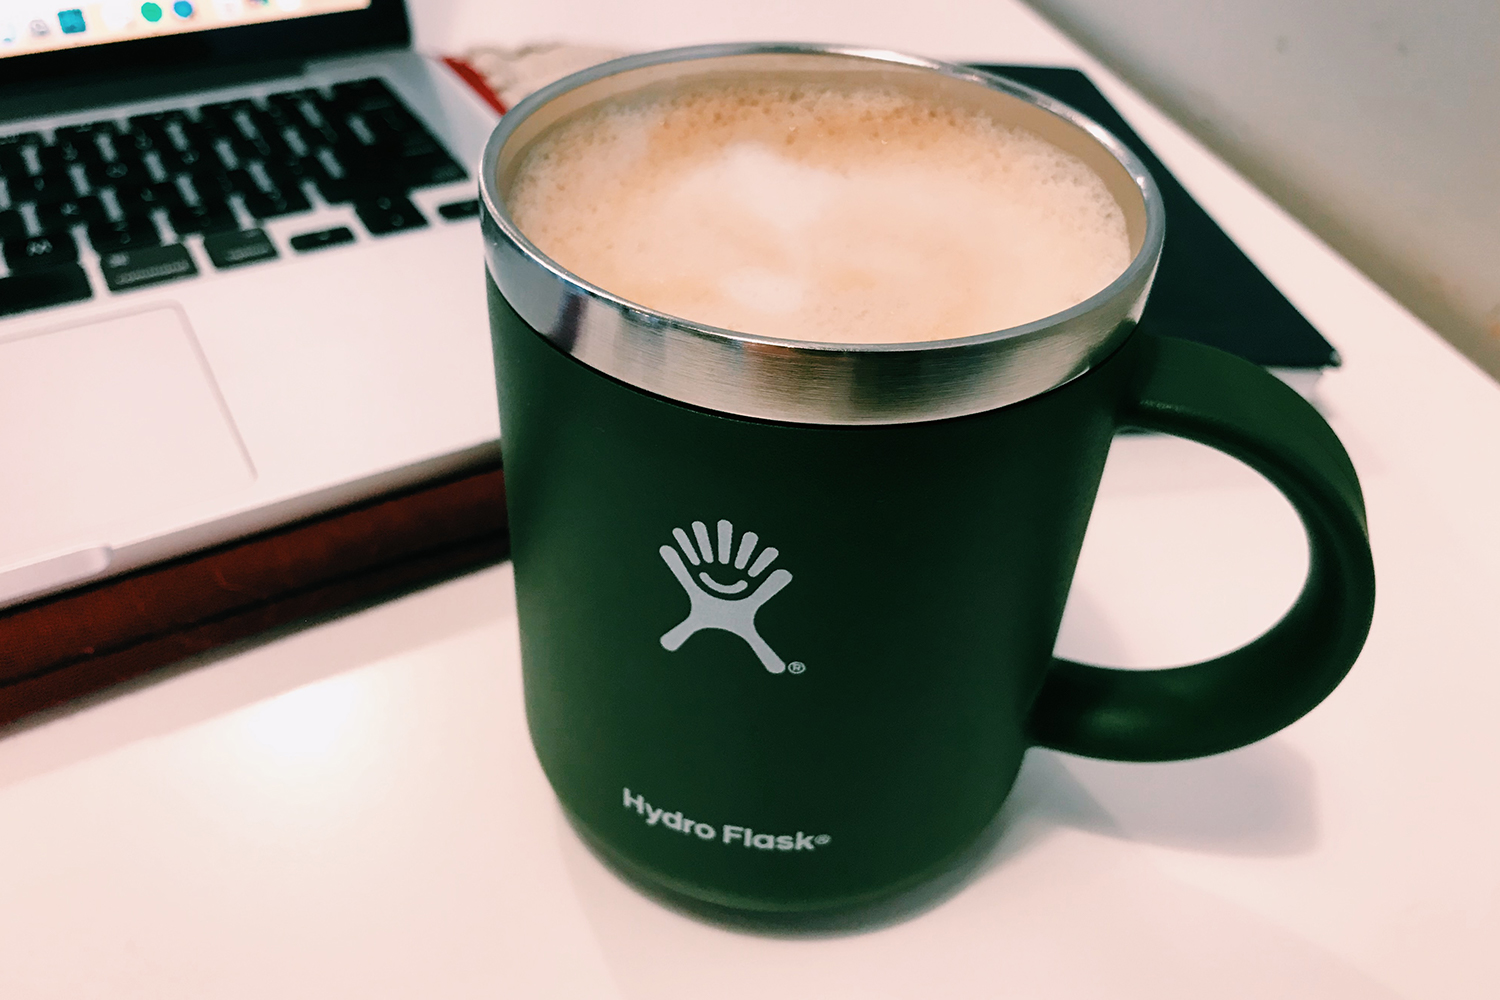 The Best Reusable Coffee Mugs For Espresso Drinks Reviewed Insidehook